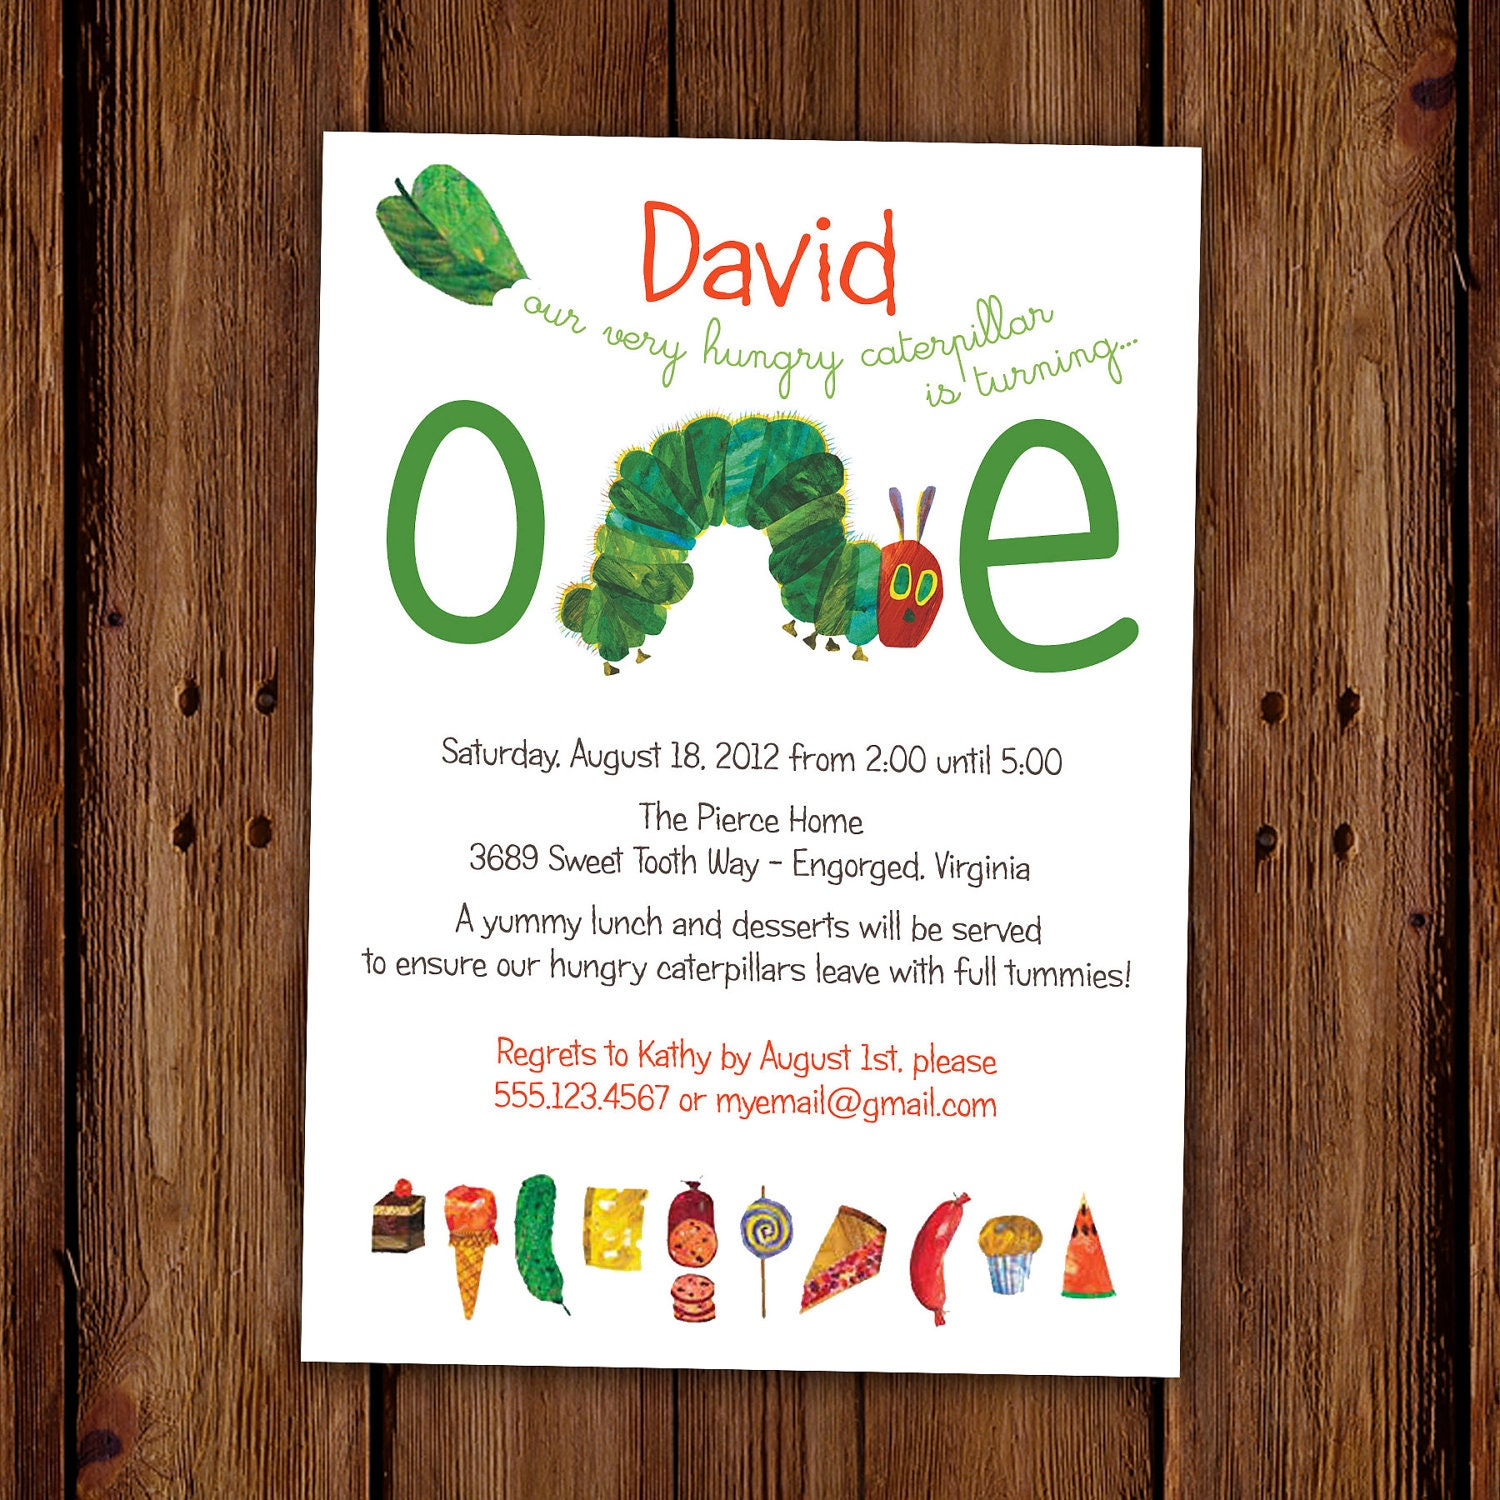 Very Hungry Caterpillar Invites was luxury invitation template